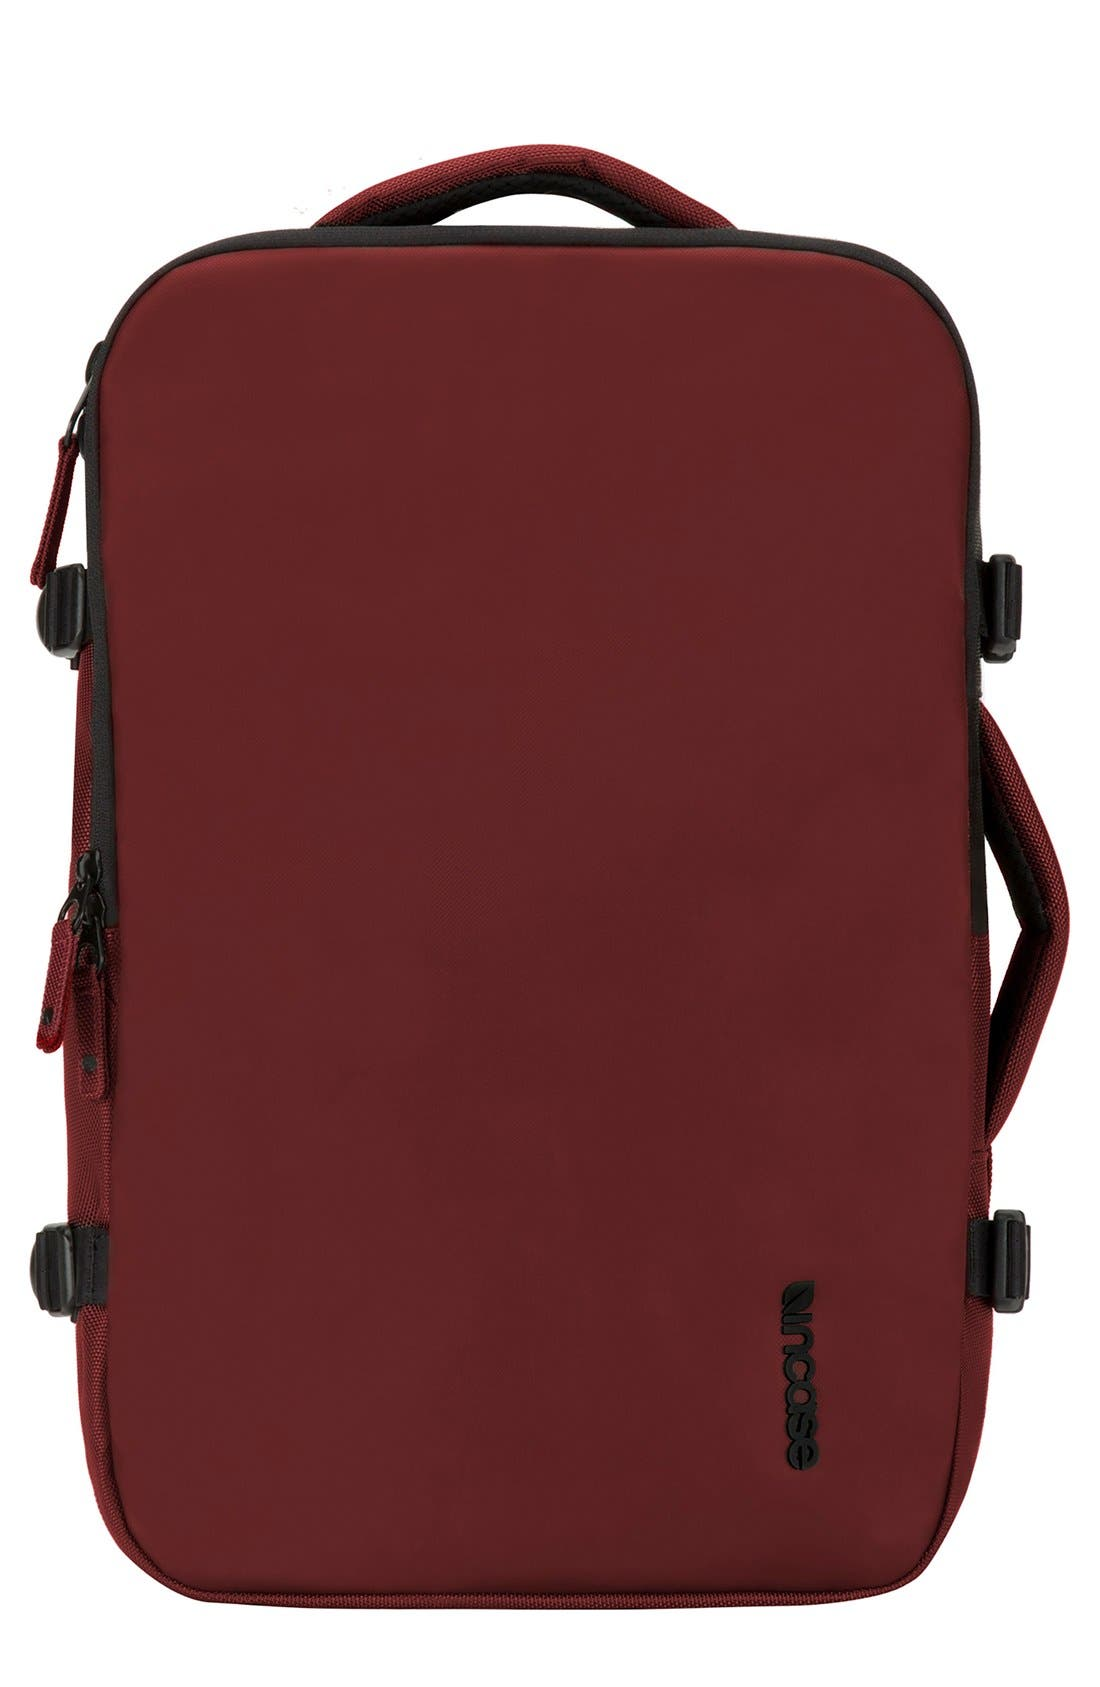 VIA Backpack,                             Main thumbnail 1, color,                             Deep Red